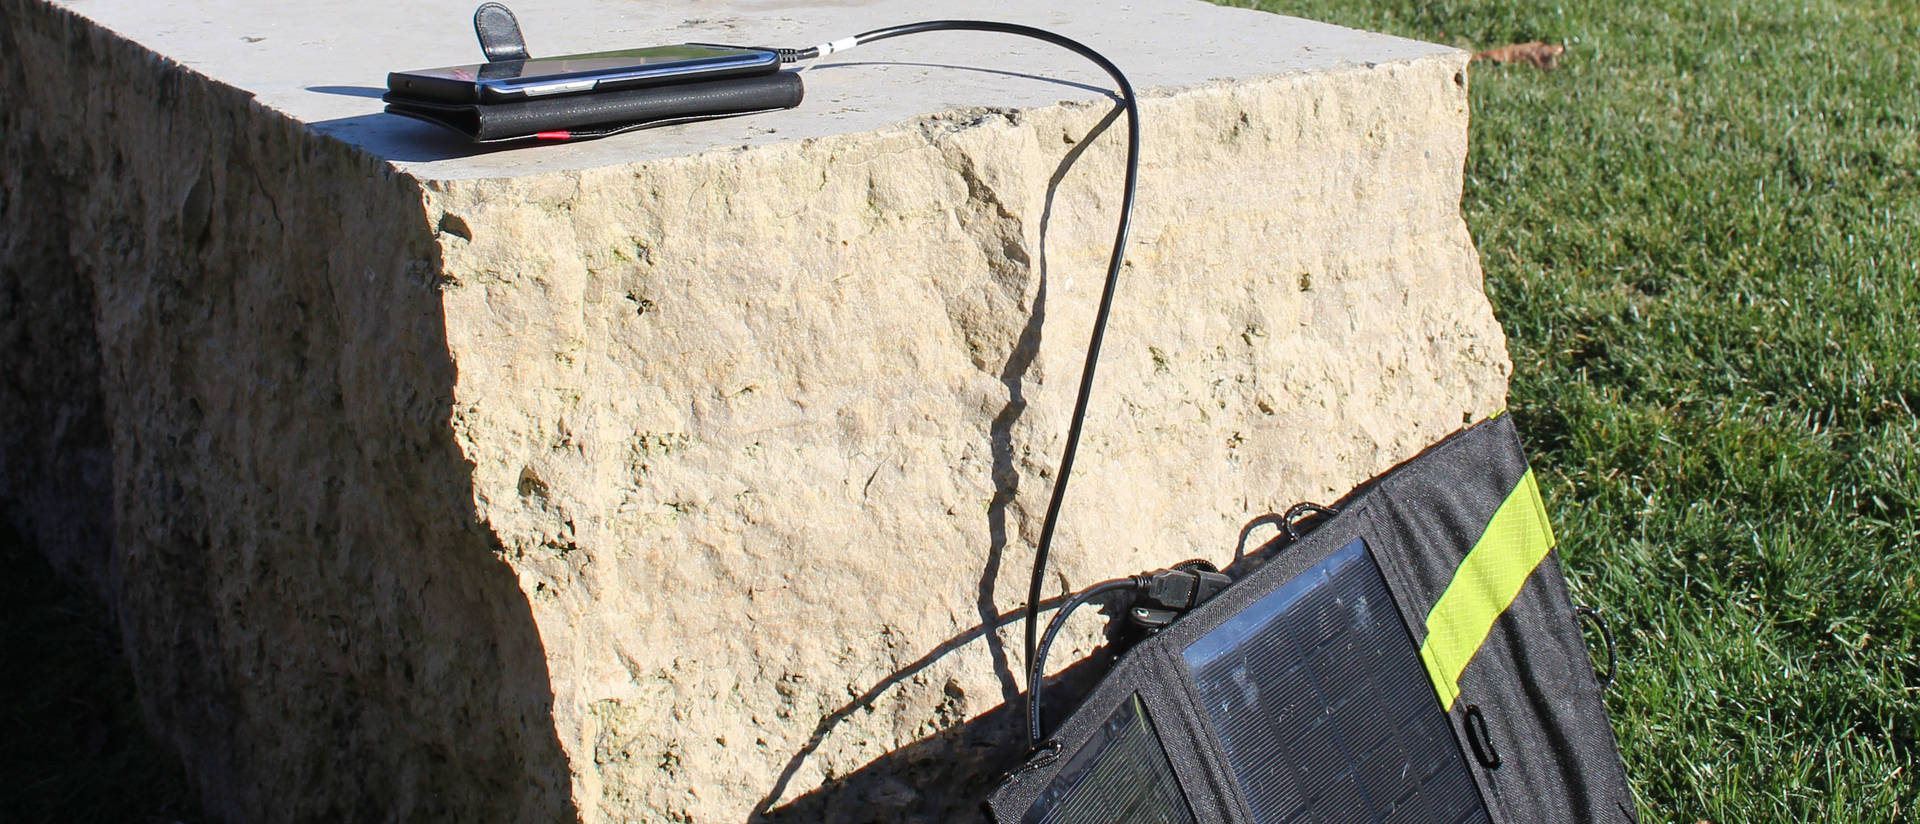 Solar charger connected to tablet